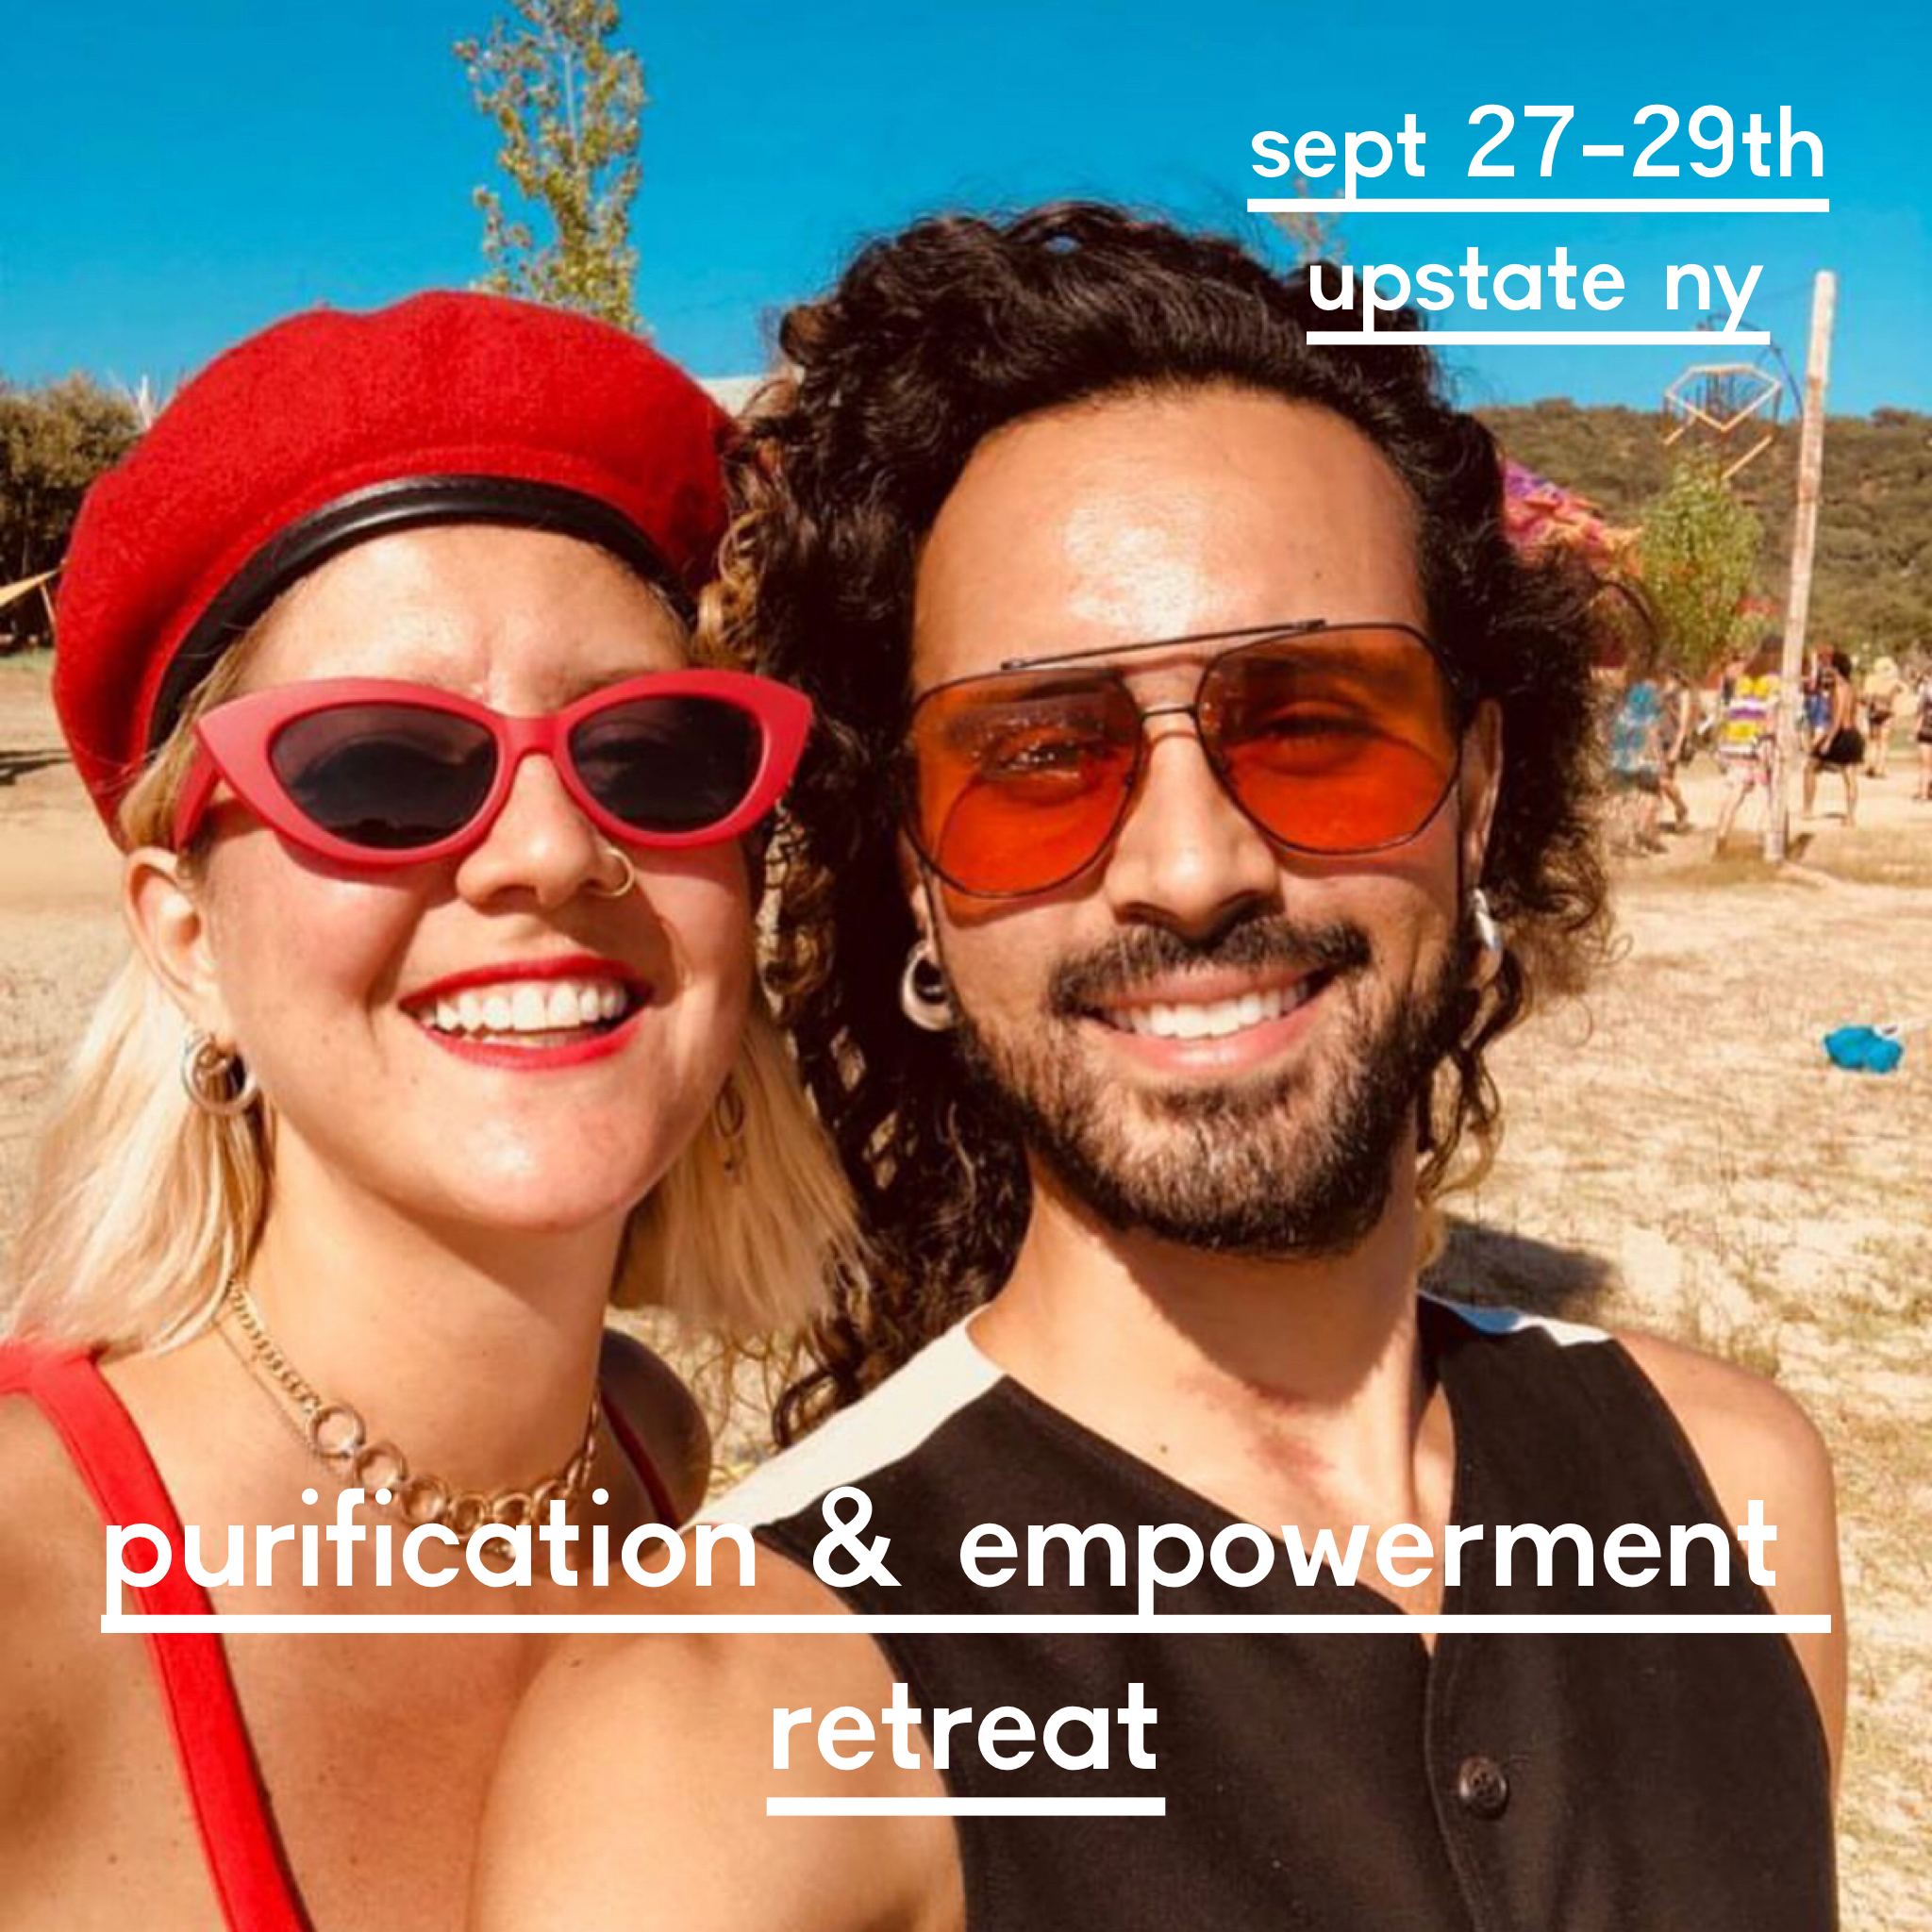 Why purify? In order to reconnect with our spiritual heart -- the part of us that is already awake, guiding us towards our purpose -- we must purify ourselves from old habits to create a sustainable, happy life. - MAHA ROSE NORTH130 MORGAN HILL ROAD, HURLEY, NY.Join us